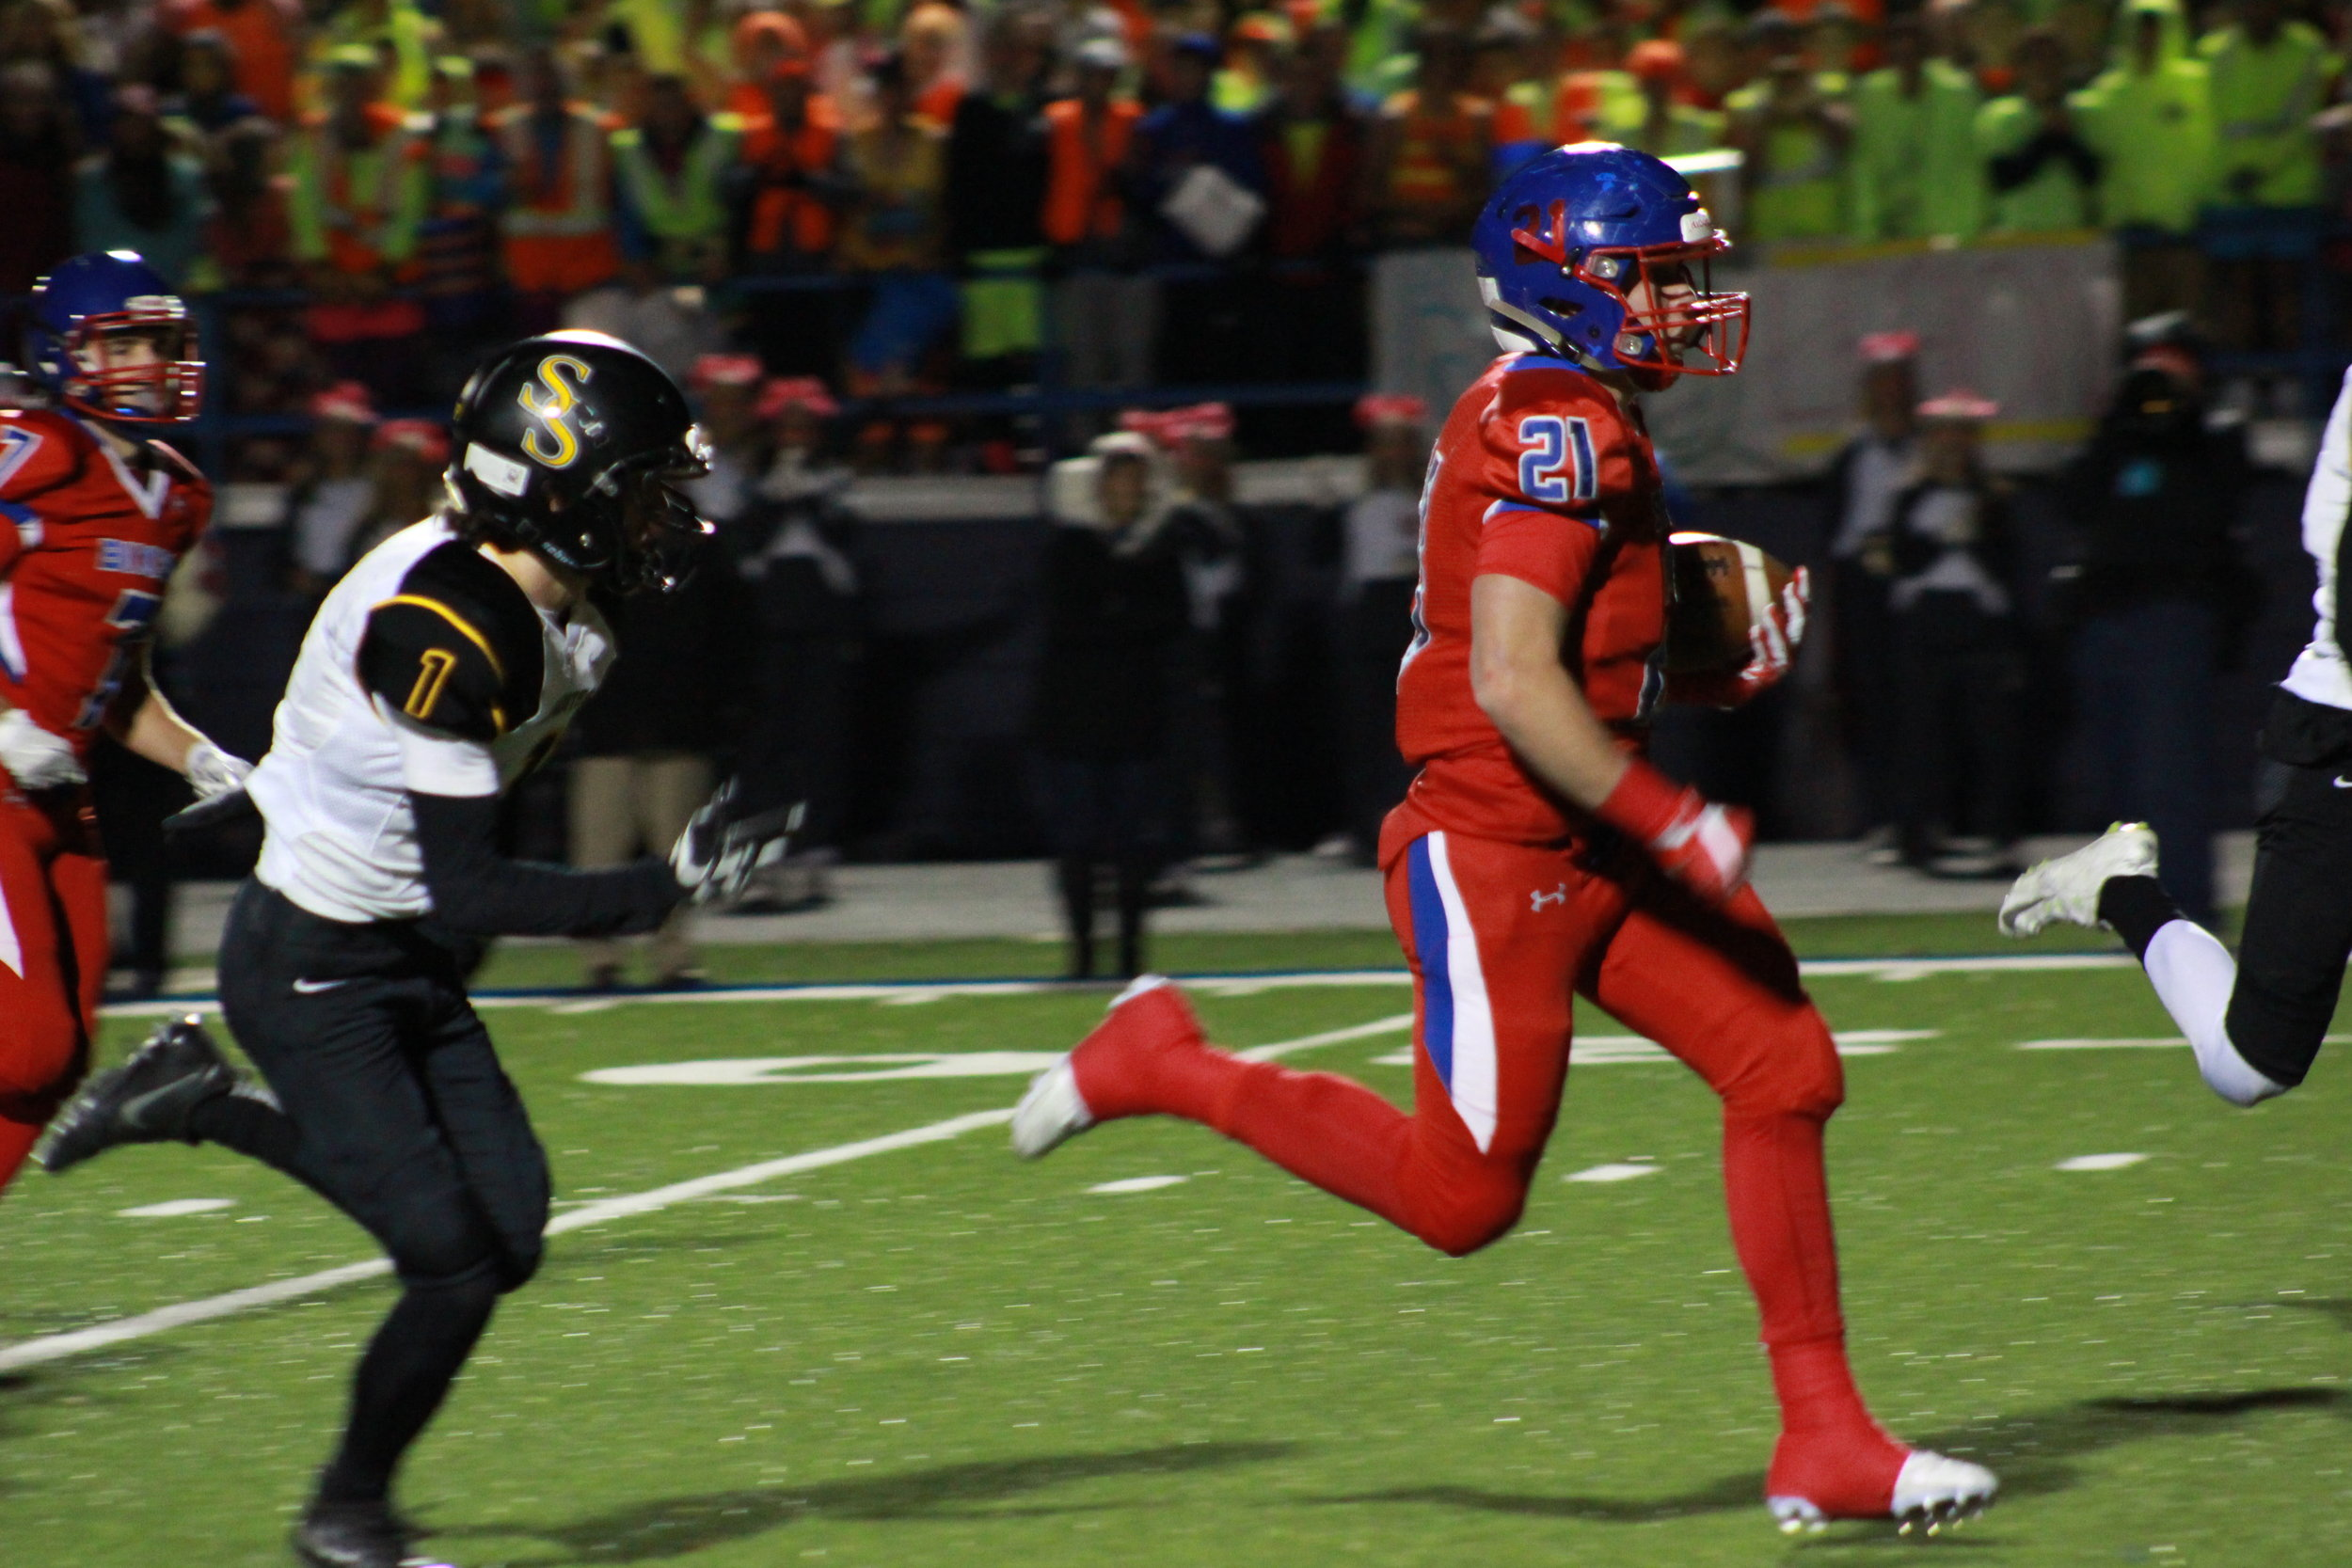 Bixby's Tucker Pawley ran for 202 yards and 3 touchdowns in the Semi-Finals. Photo: Morgan Miller